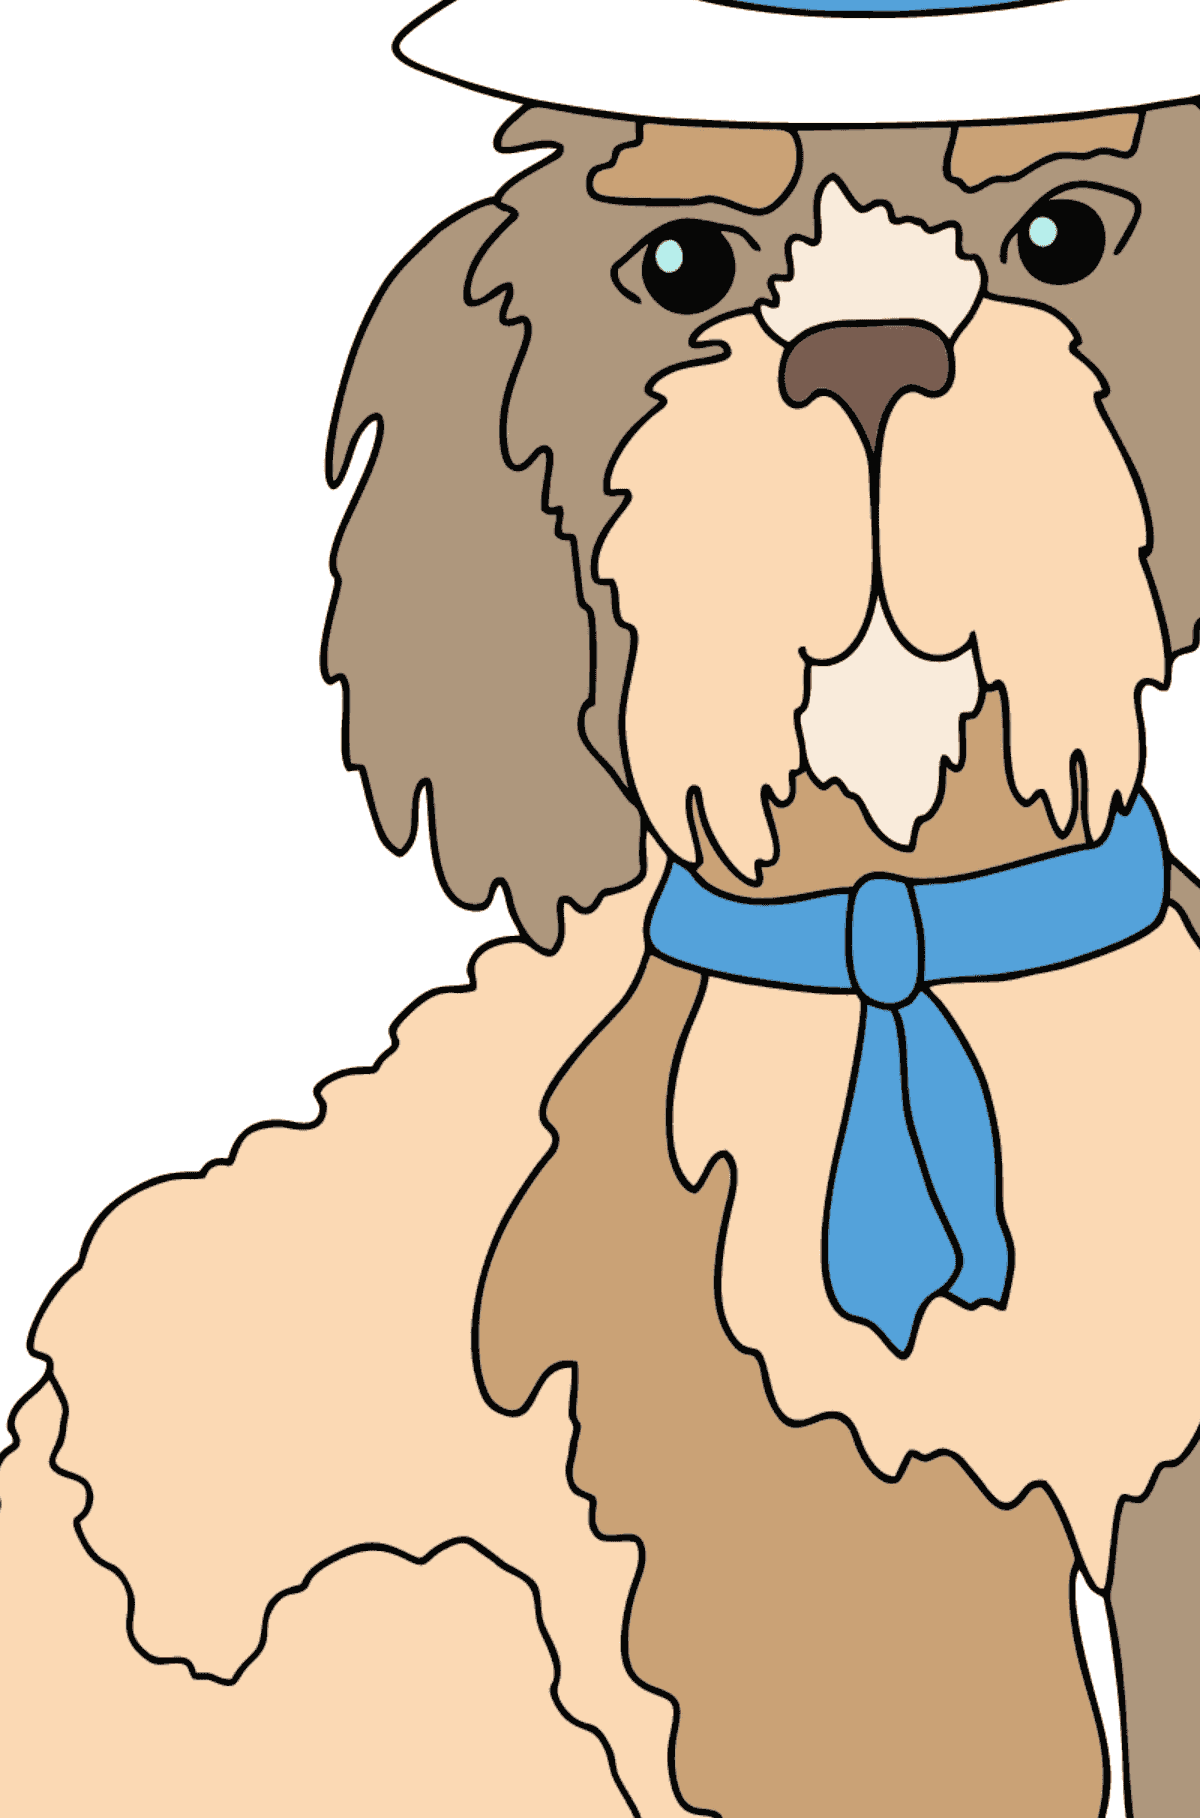 Coloring Page - A Dog in a Beautiful Hat for Kids  - Color by Geometric Shapes